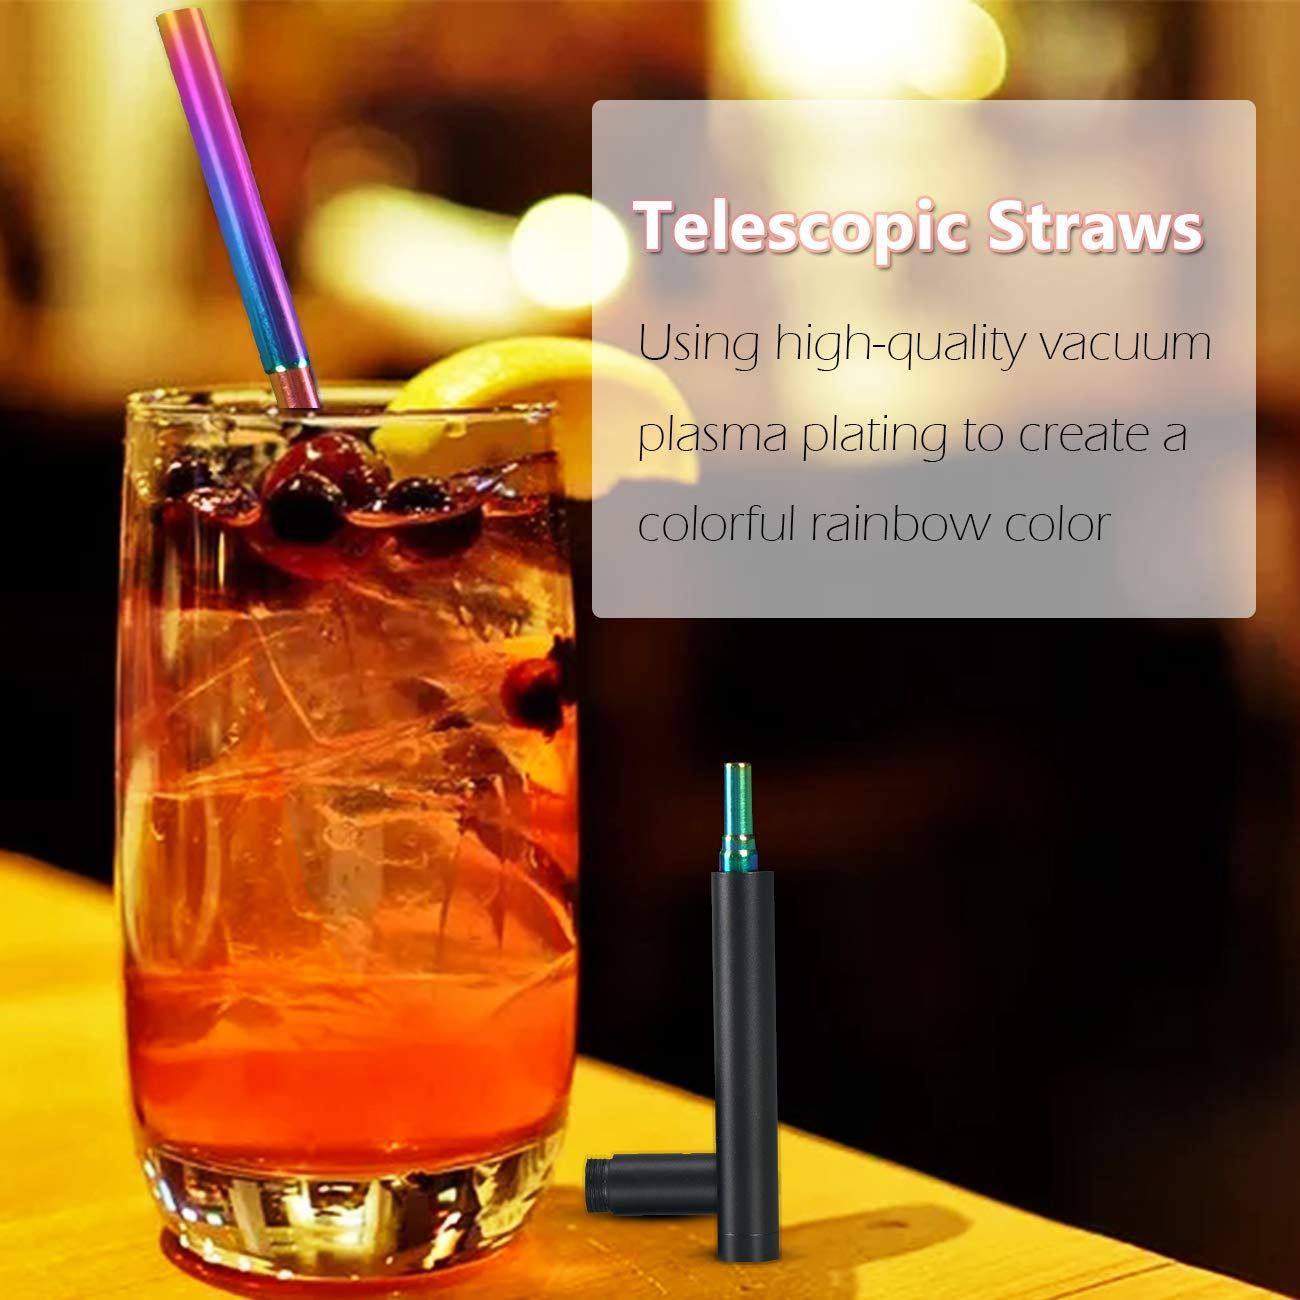 Multicolor Keychain Clips and Storage Case Chomang Stainless Steel Collapsible Drinking Straw Portable Travel Metal Straw with Cleaning Brush Reusable Telestopic Straws